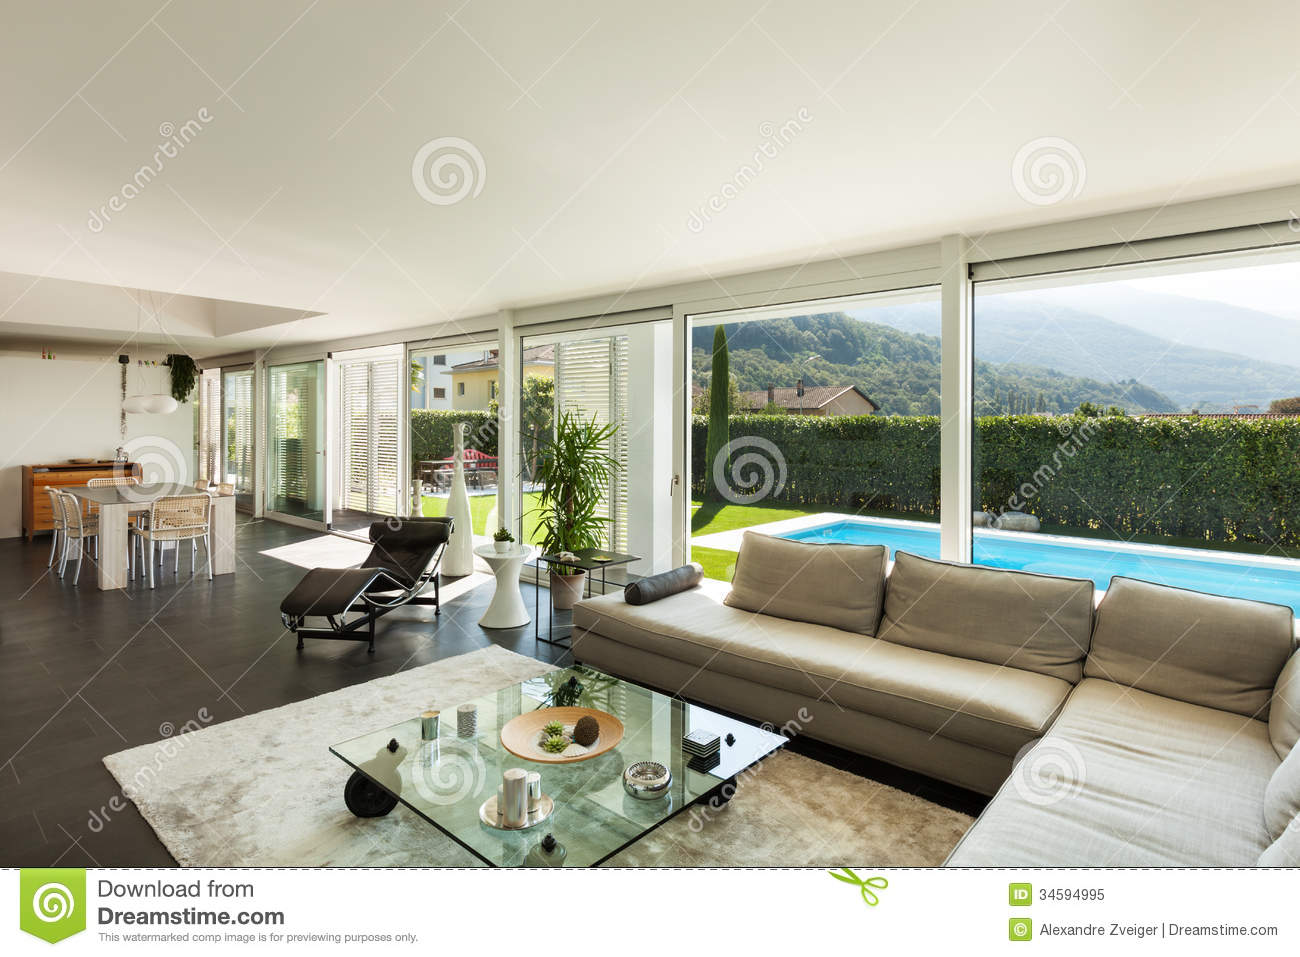 Modern villa beautiful interiors stock image image of for Villa interior design living room